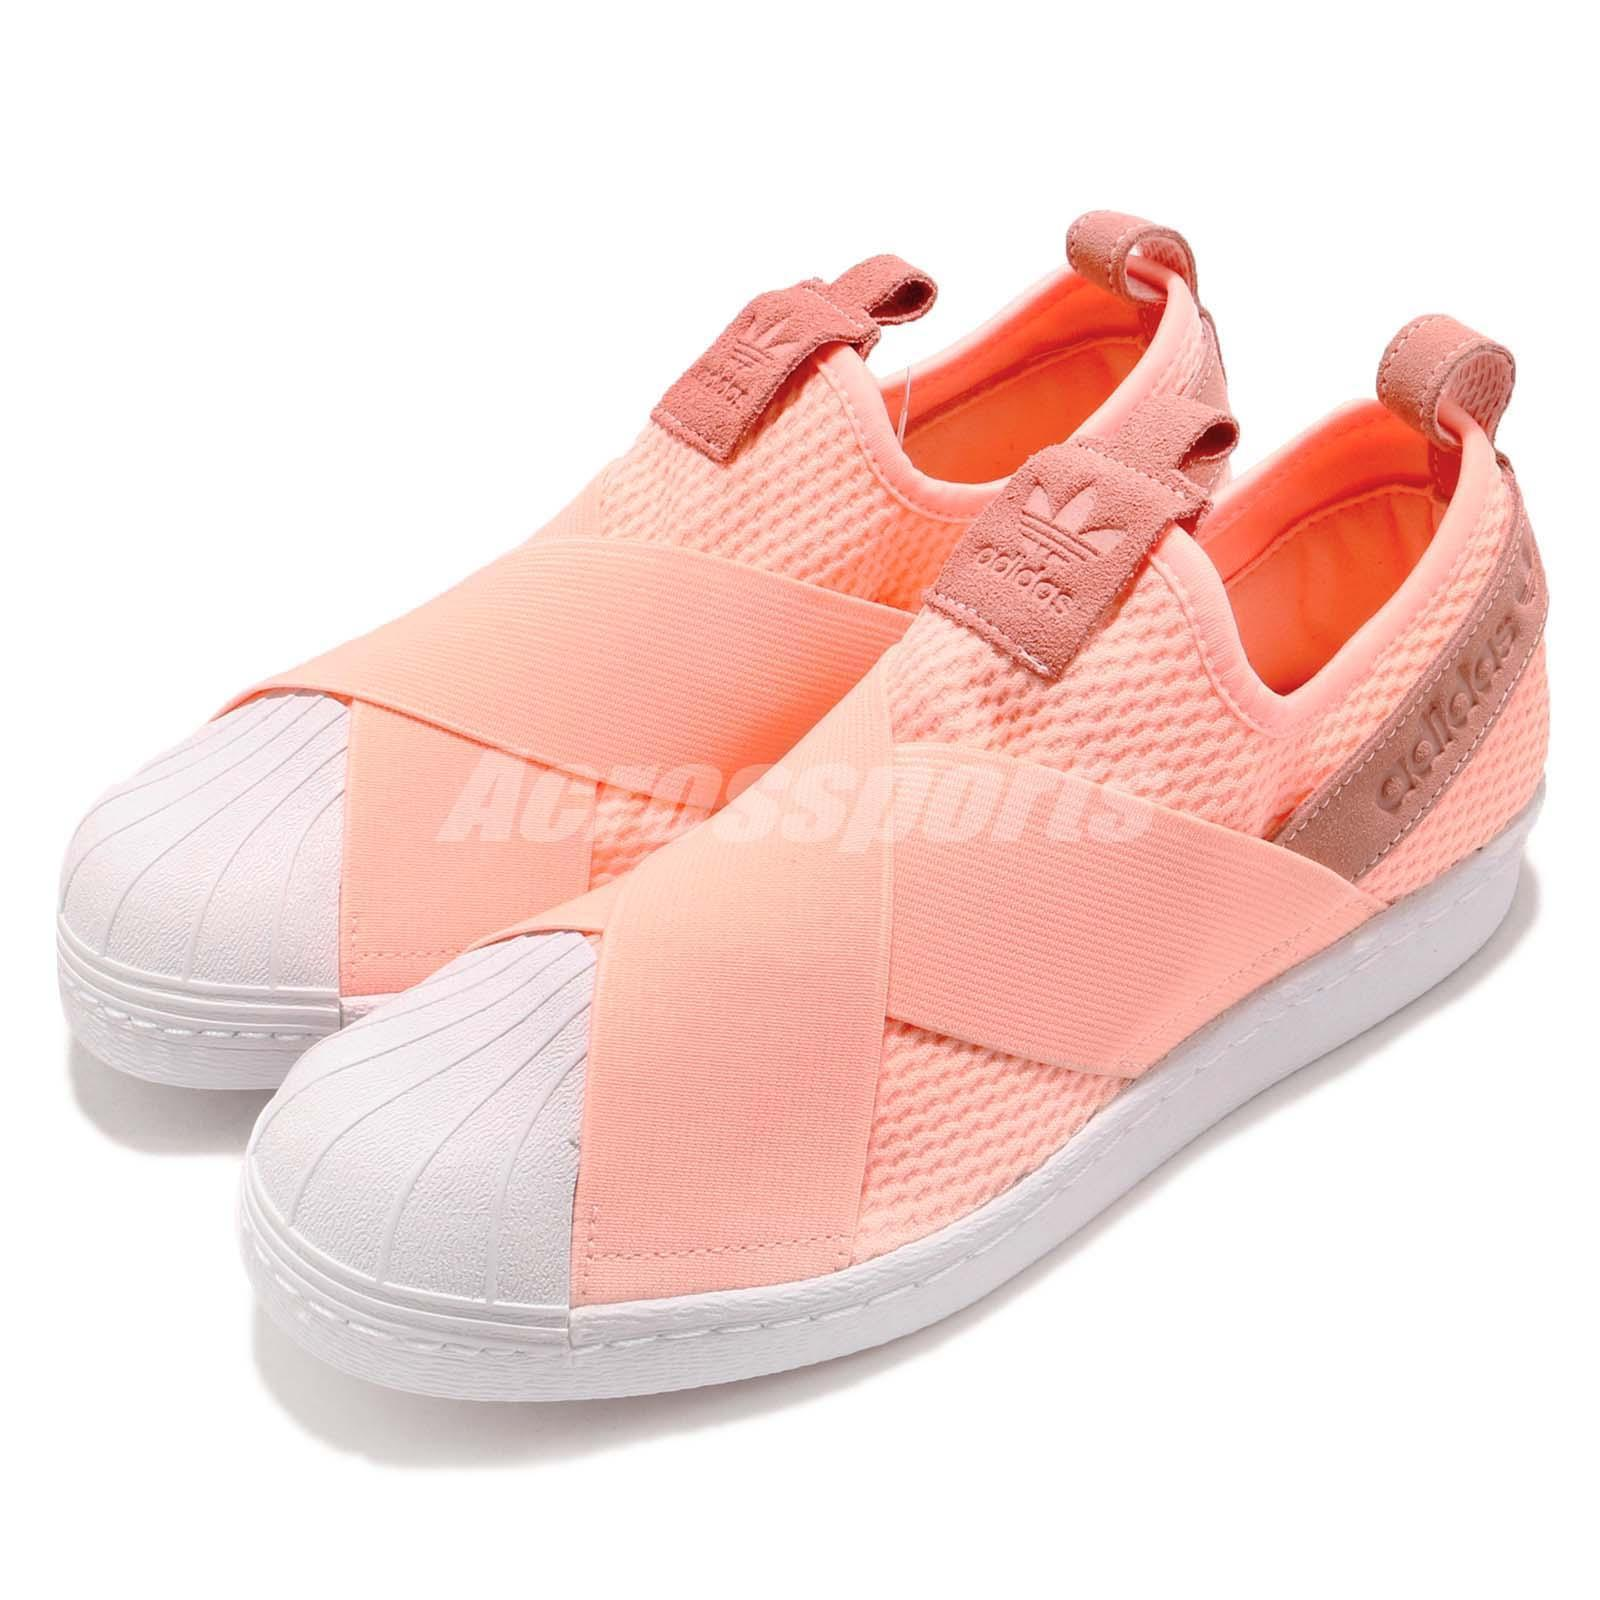 Details about adidas Superstar Slip On W Strap Clear Orange White Women Shoes Sneakers AQ0919